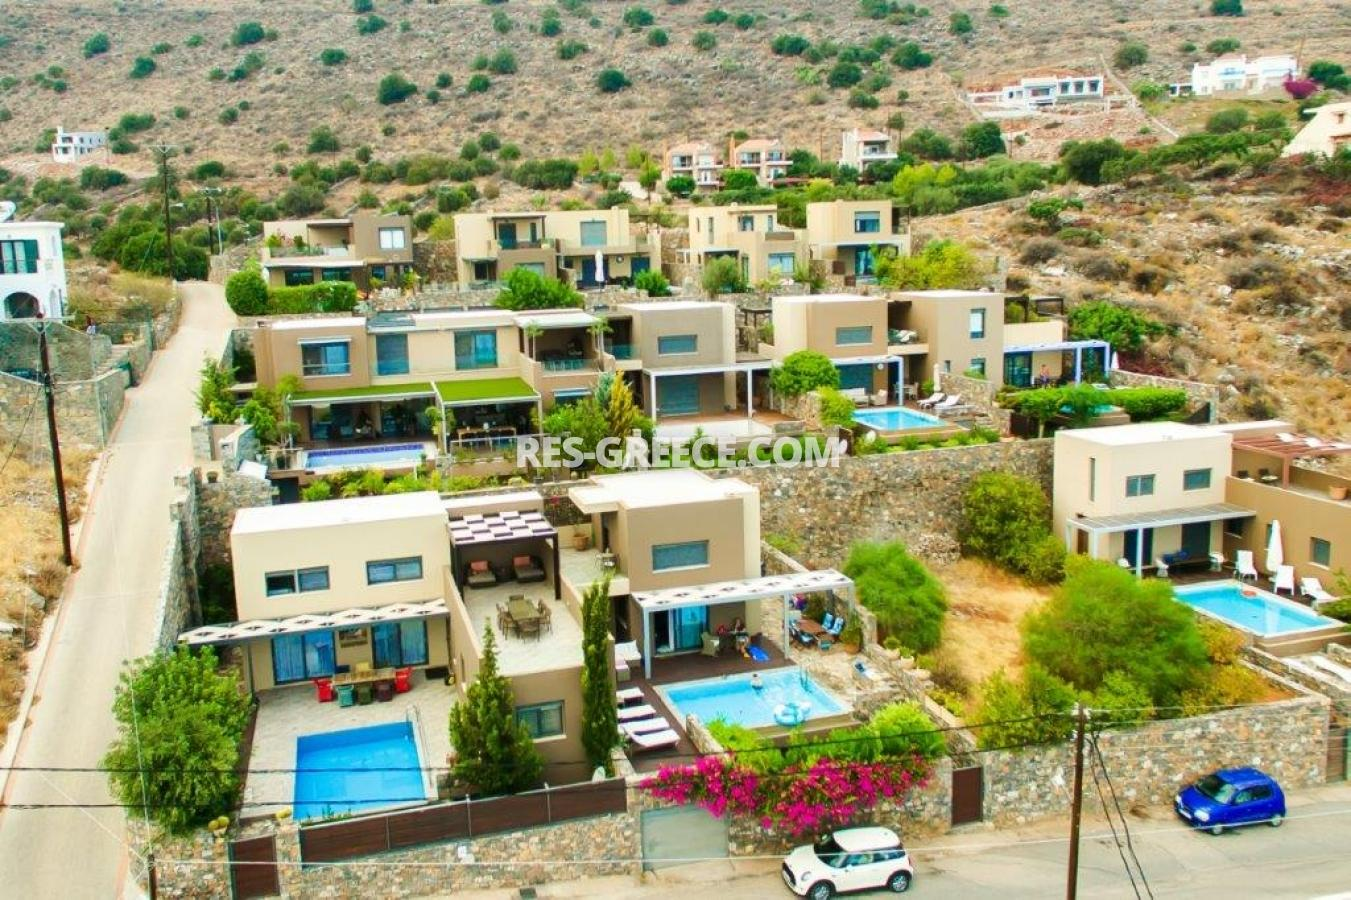 Aura Blue, Crete, Greece - villa with pool for sale in the best spot in Crete, in Elounda - Photo 38